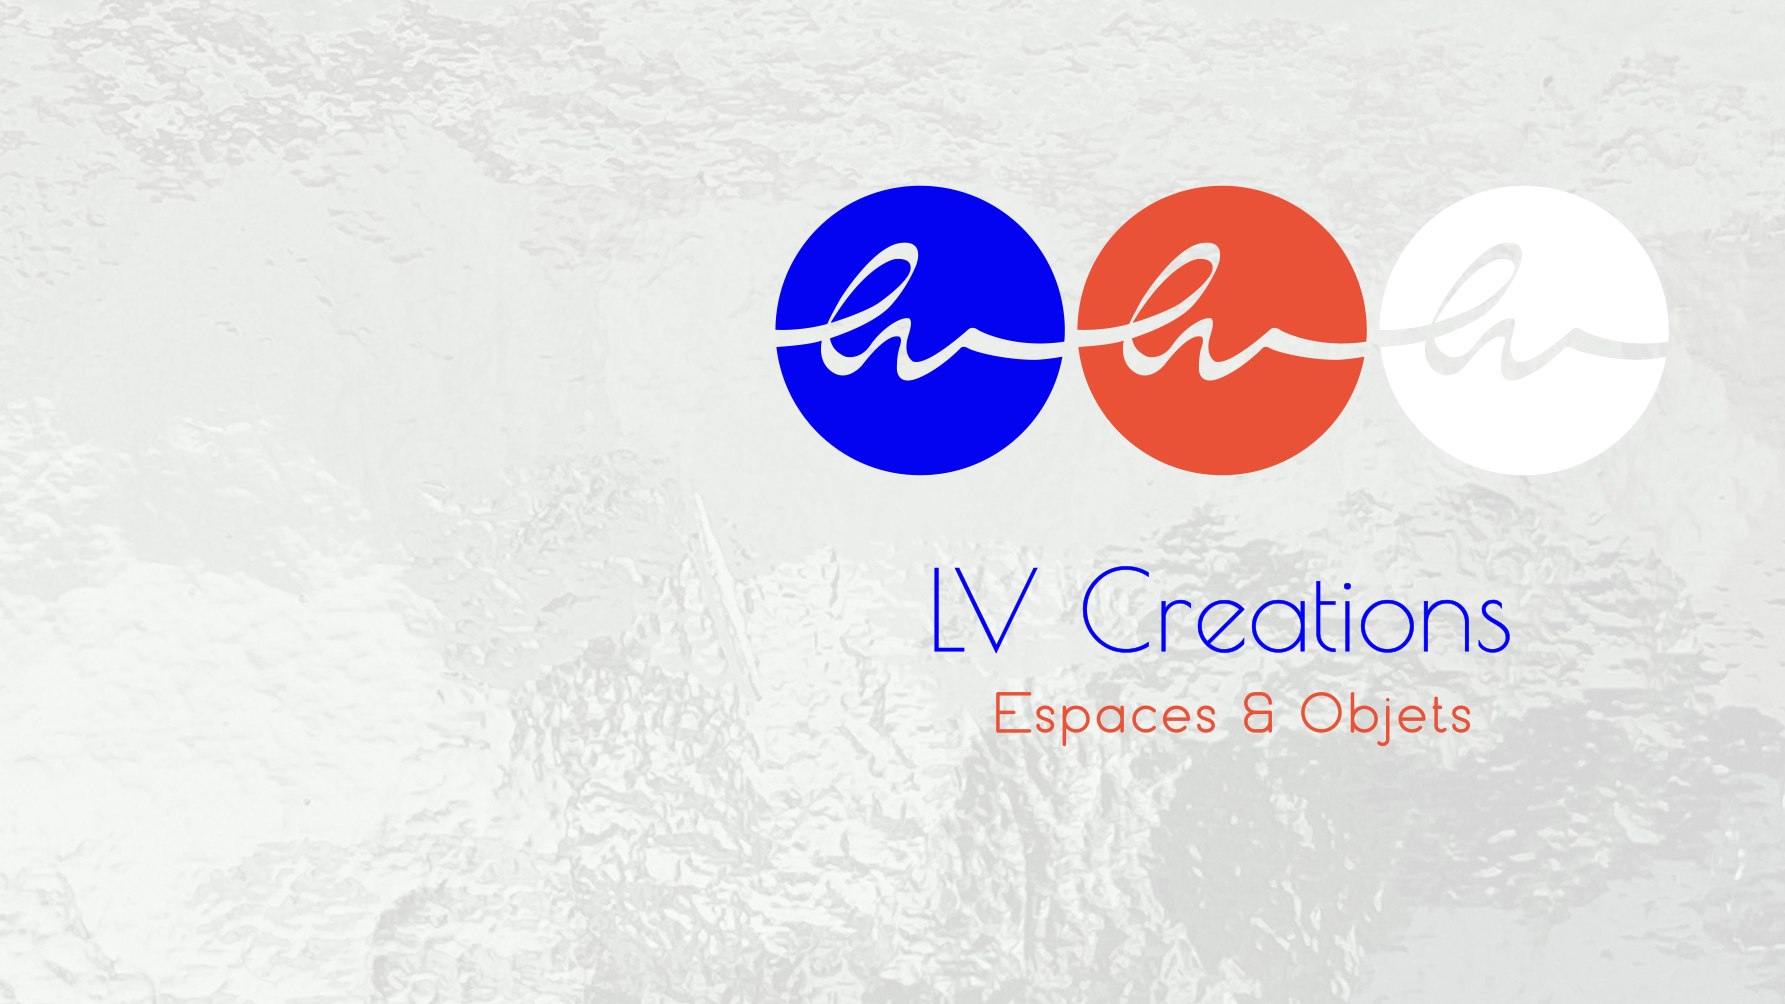 LV Creations Logo